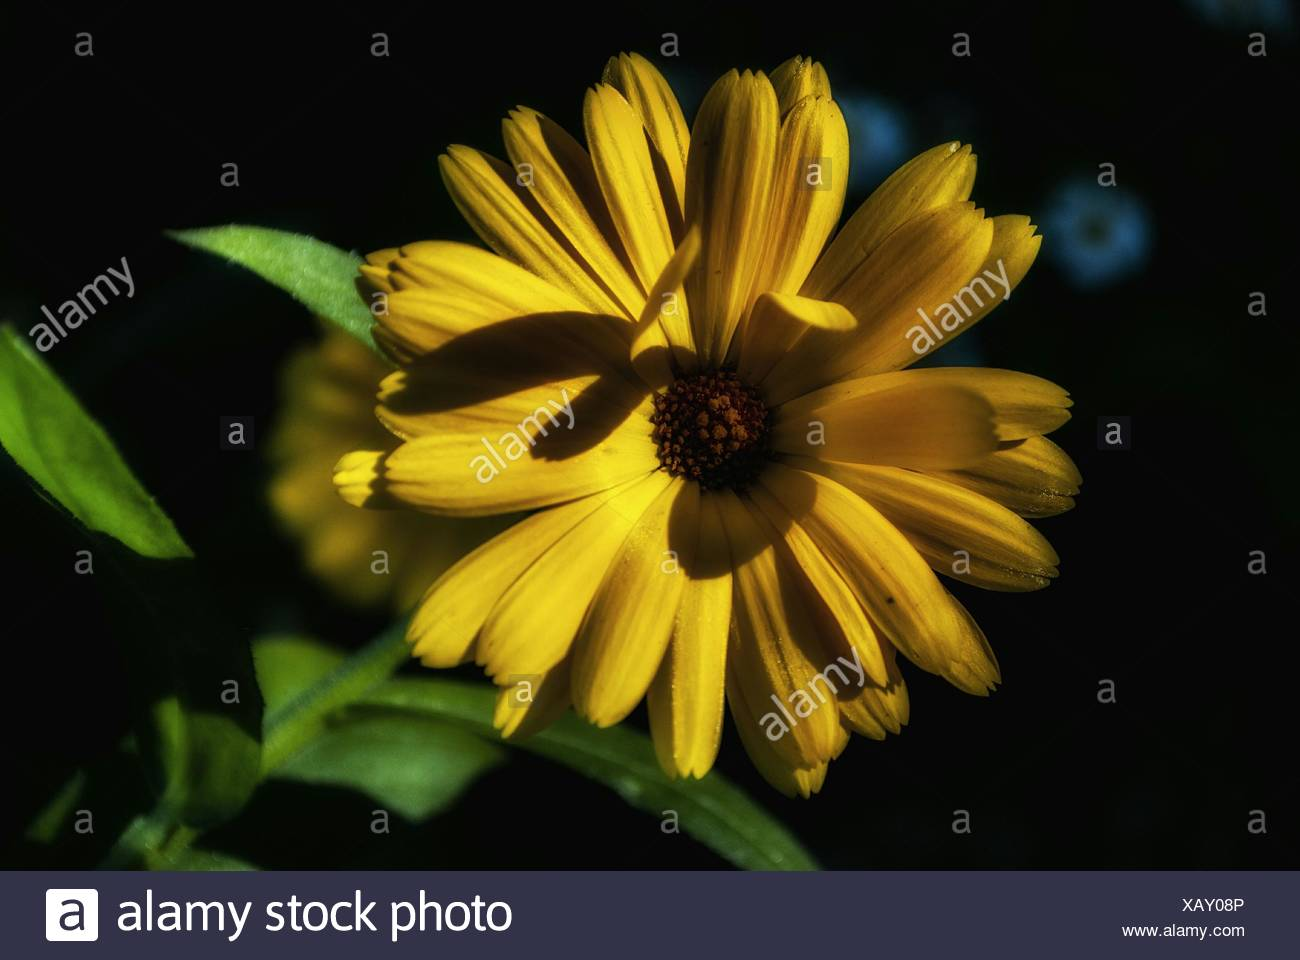 Close up of yellow flower blooming outdoors at night stock photo close up of yellow flower blooming outdoors at night mightylinksfo